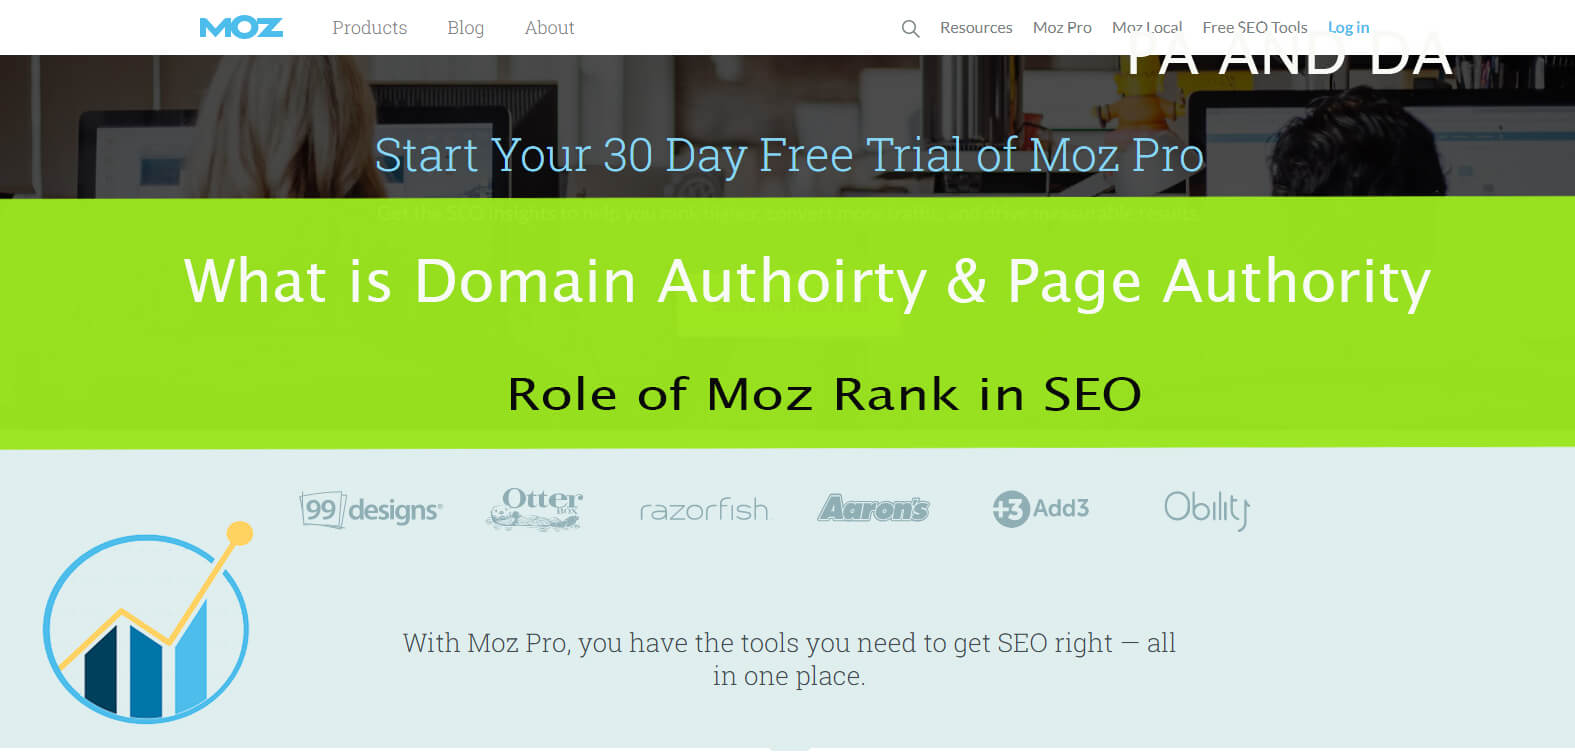 What is DA (Domain Authority) and PA (Page Authority) and Role of Moz Rank in SEO, what is domain authority checker, how to increase domain authority, domain rating checker, mozbar domain authority checker